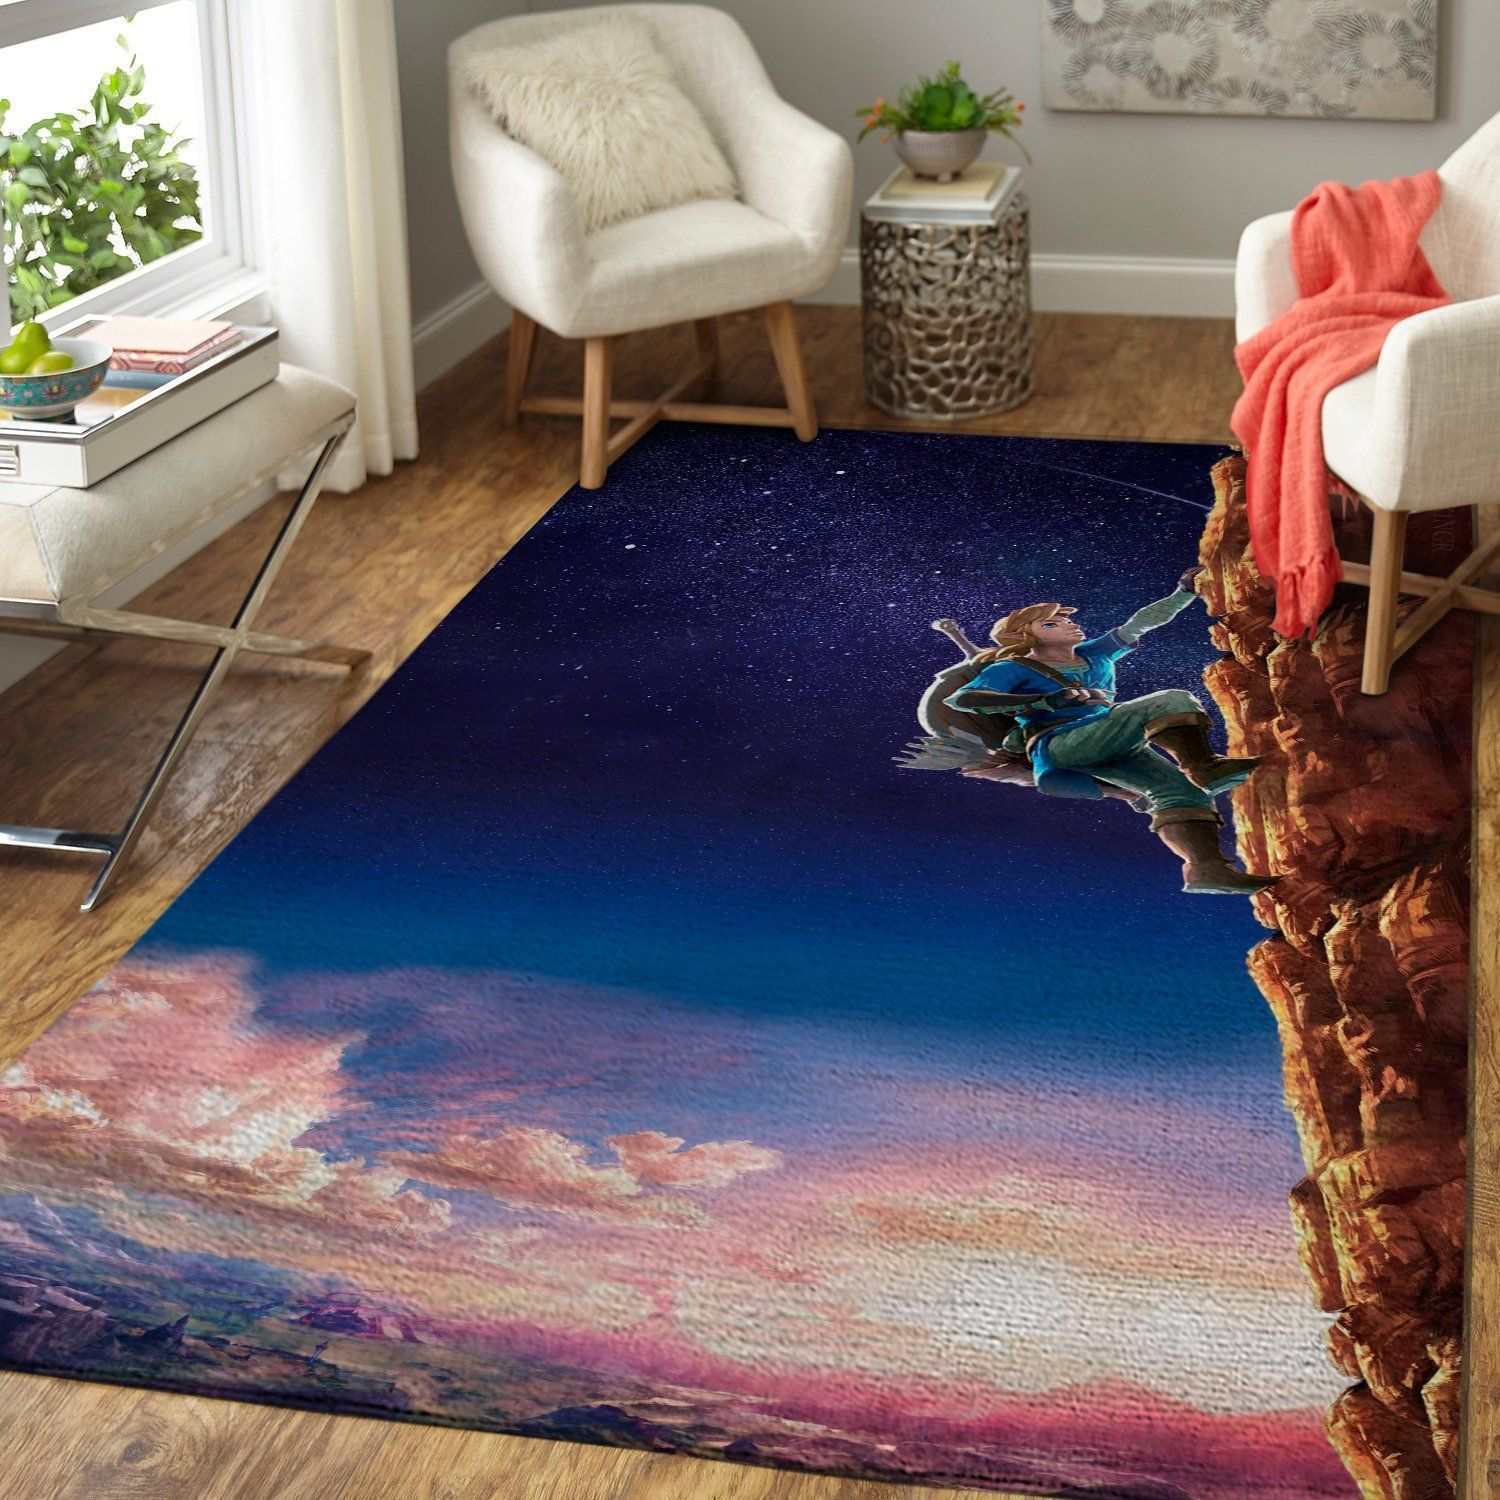 The Legend of Zelda Area Rug Nintendo Video Game Carpet, Gamer Living Room Rugs, Floor Decor 1910137